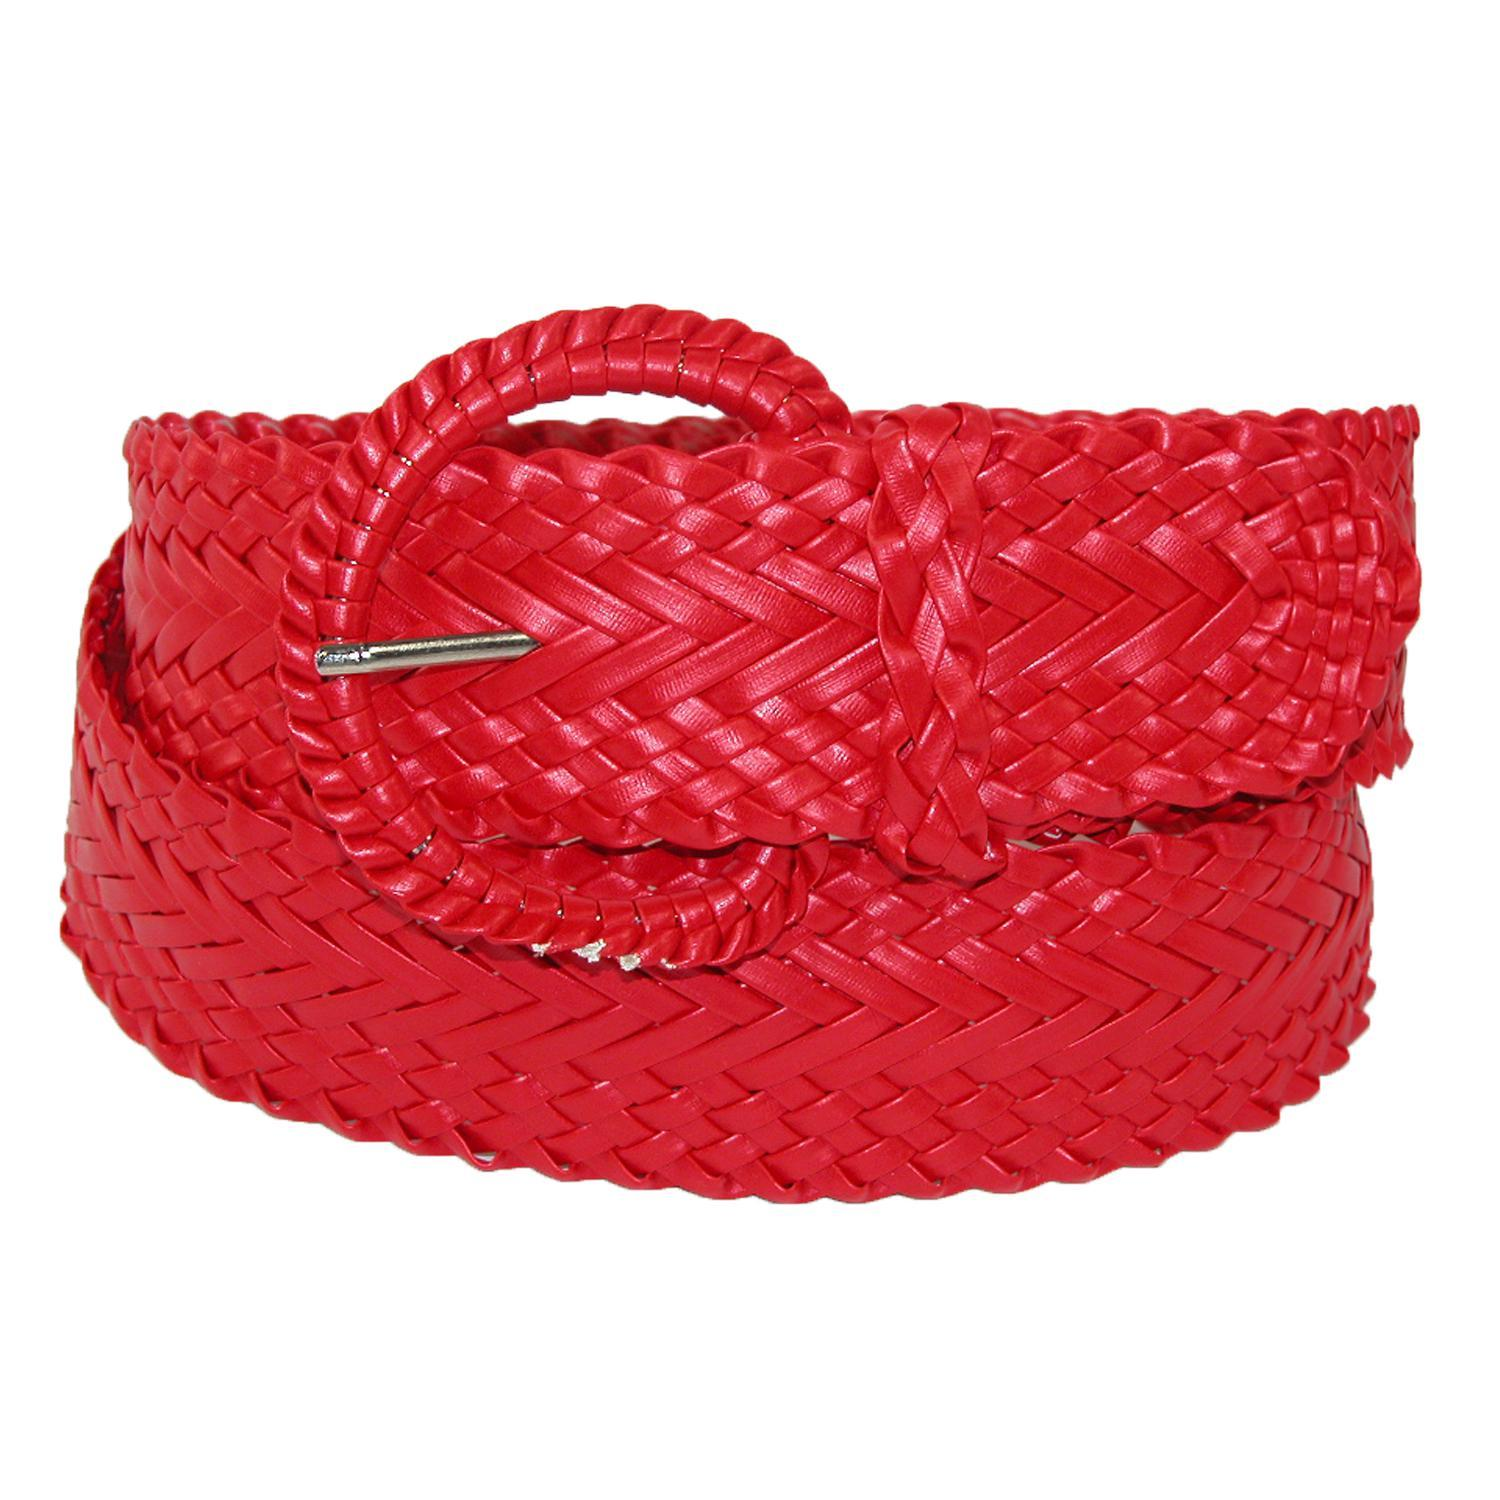 CTM_Women's_2_Inch_Wide_Adjustable_Braided_Belt_-_Red_Small